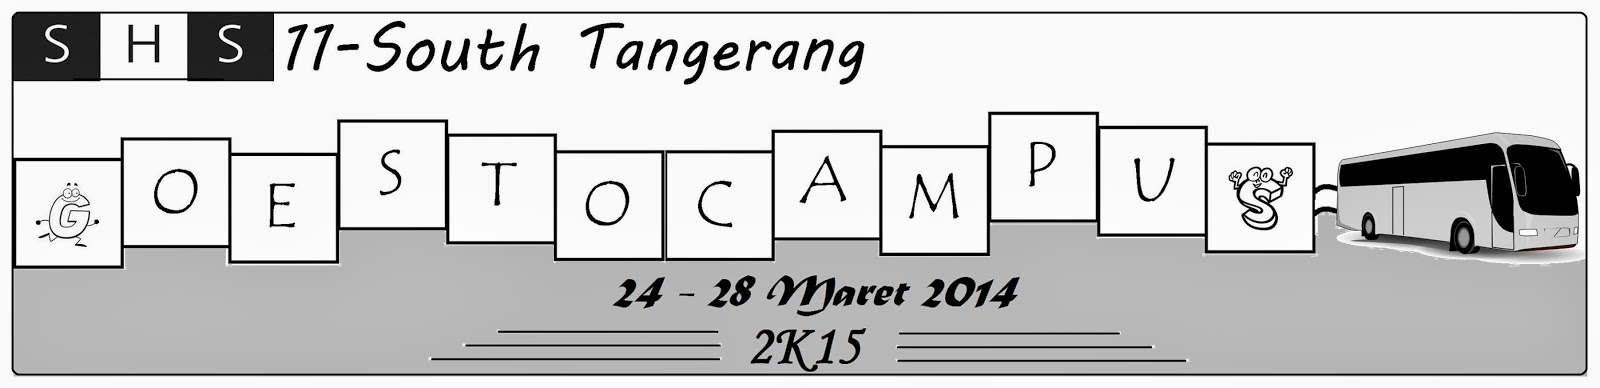 Stiker Goes To Campus SMAN 11 Tangsel